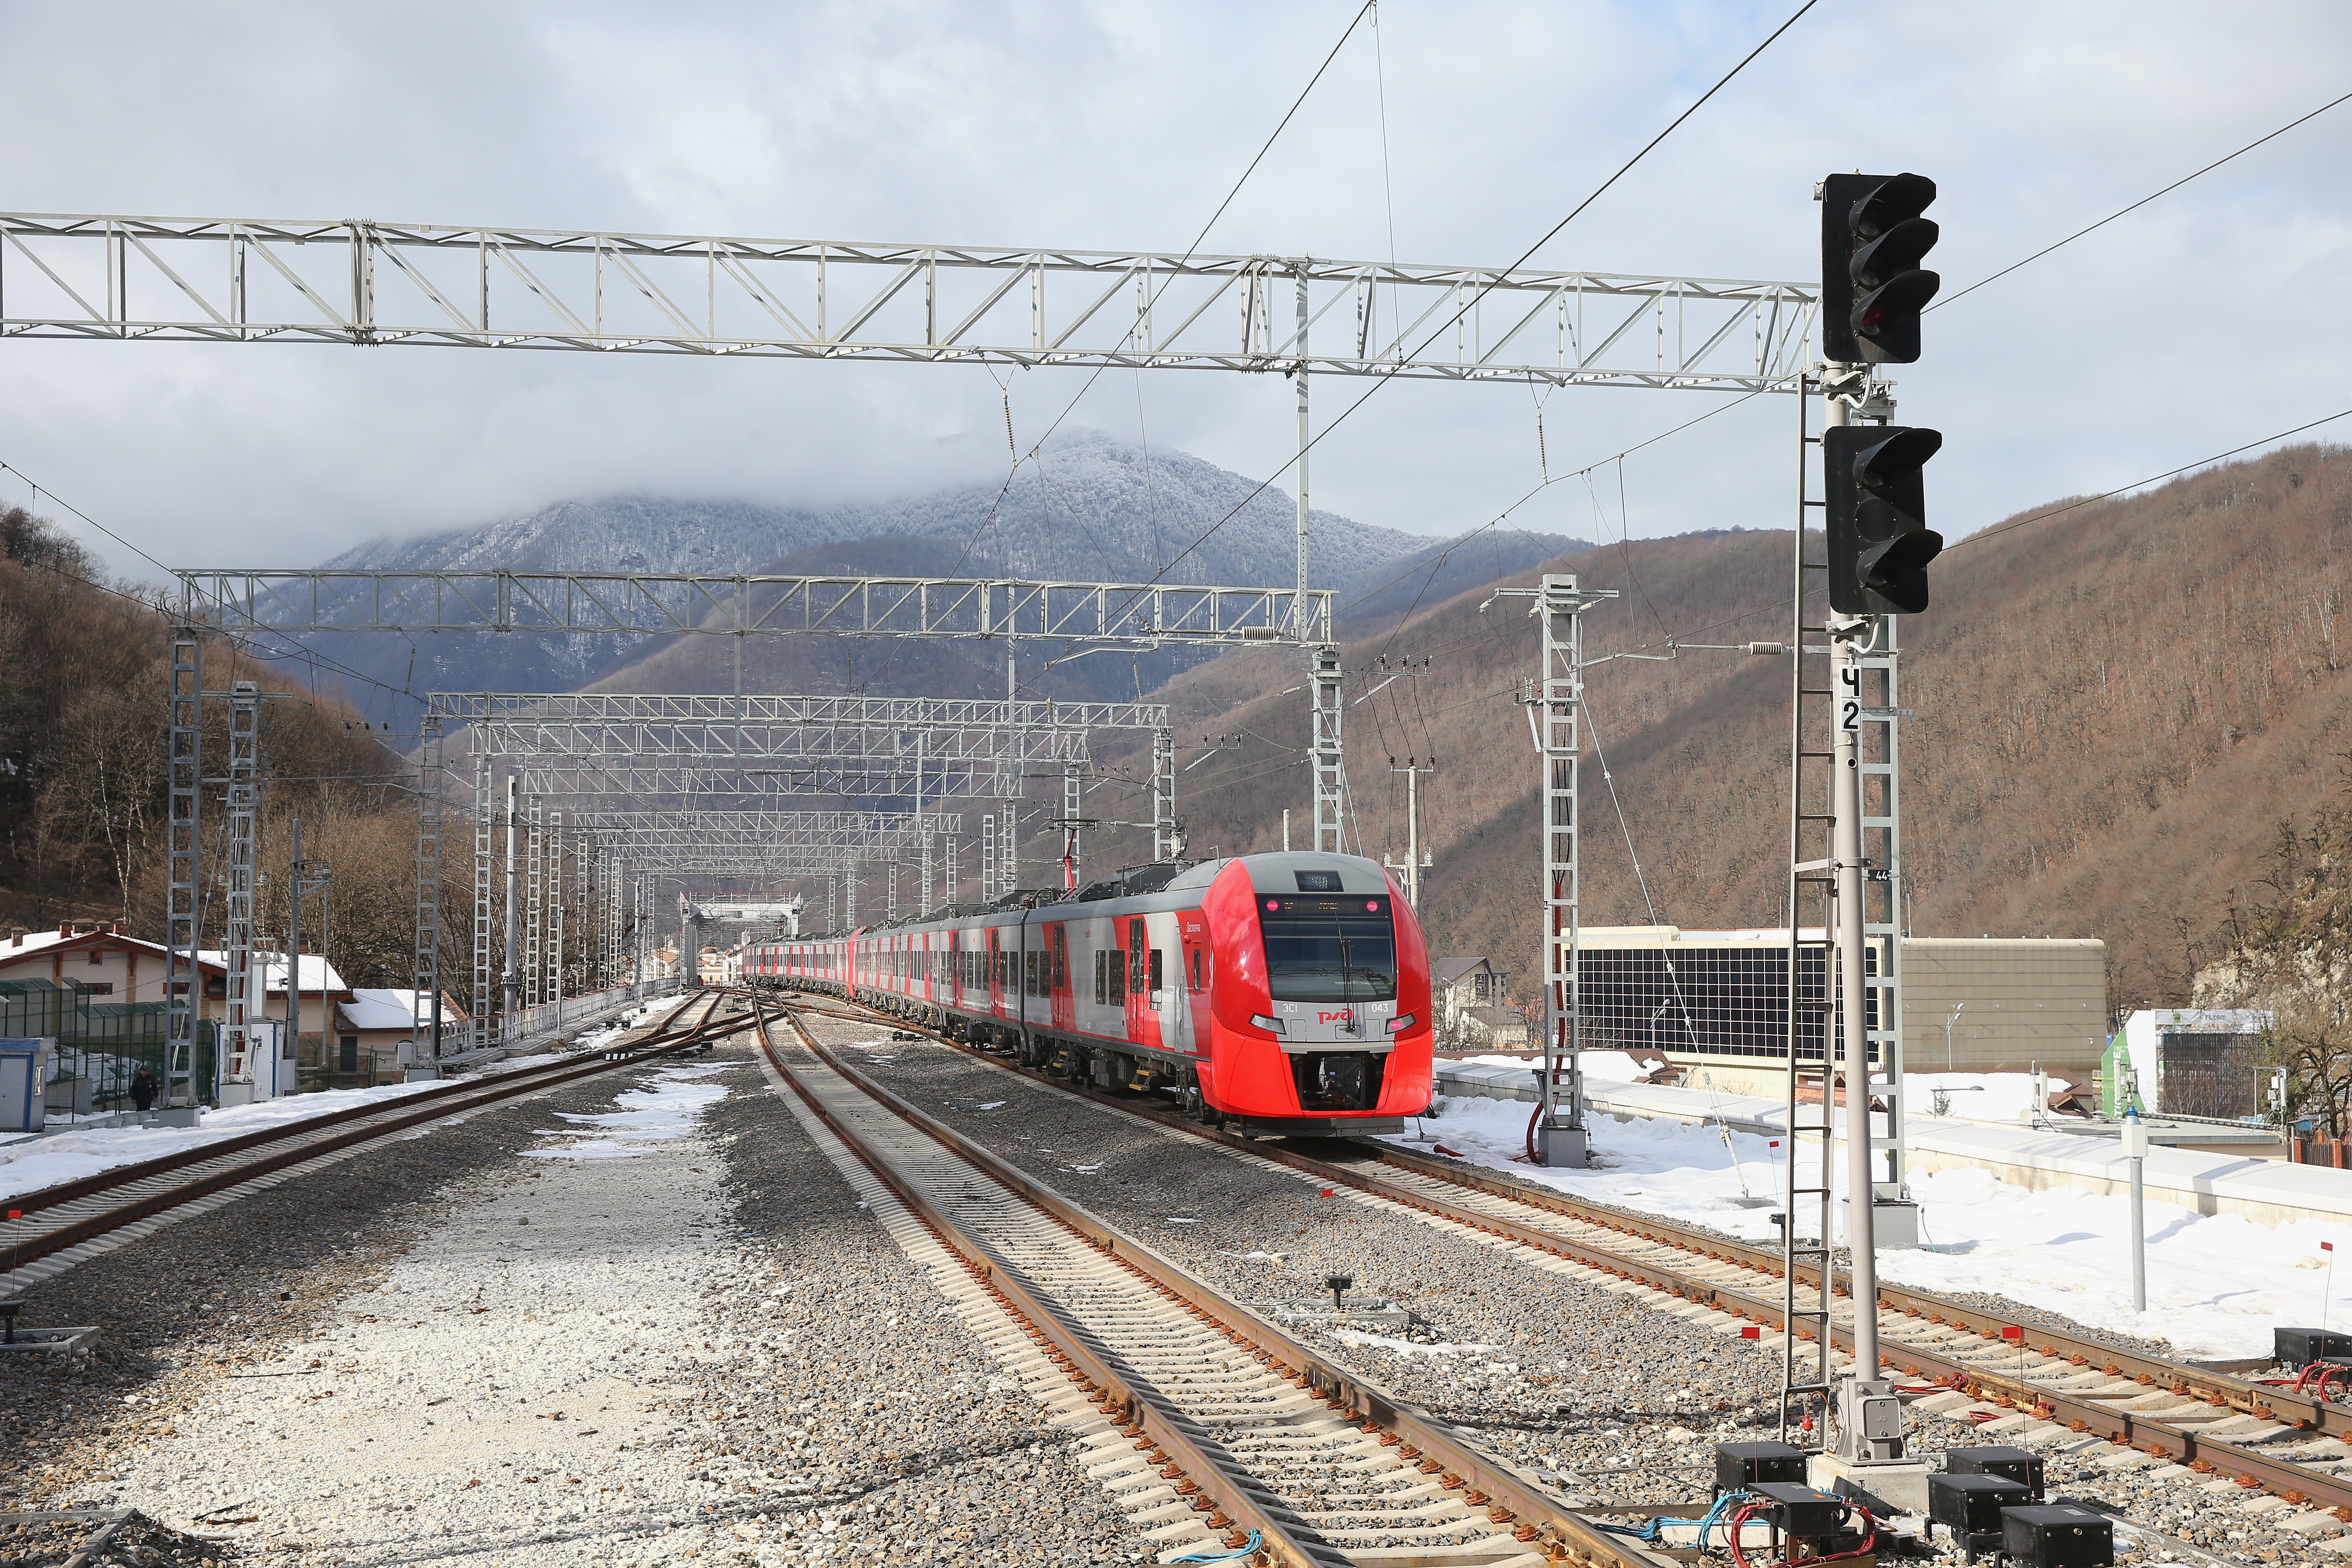 Not an actual picture of Caltrain or the VTA. This is in Russia.